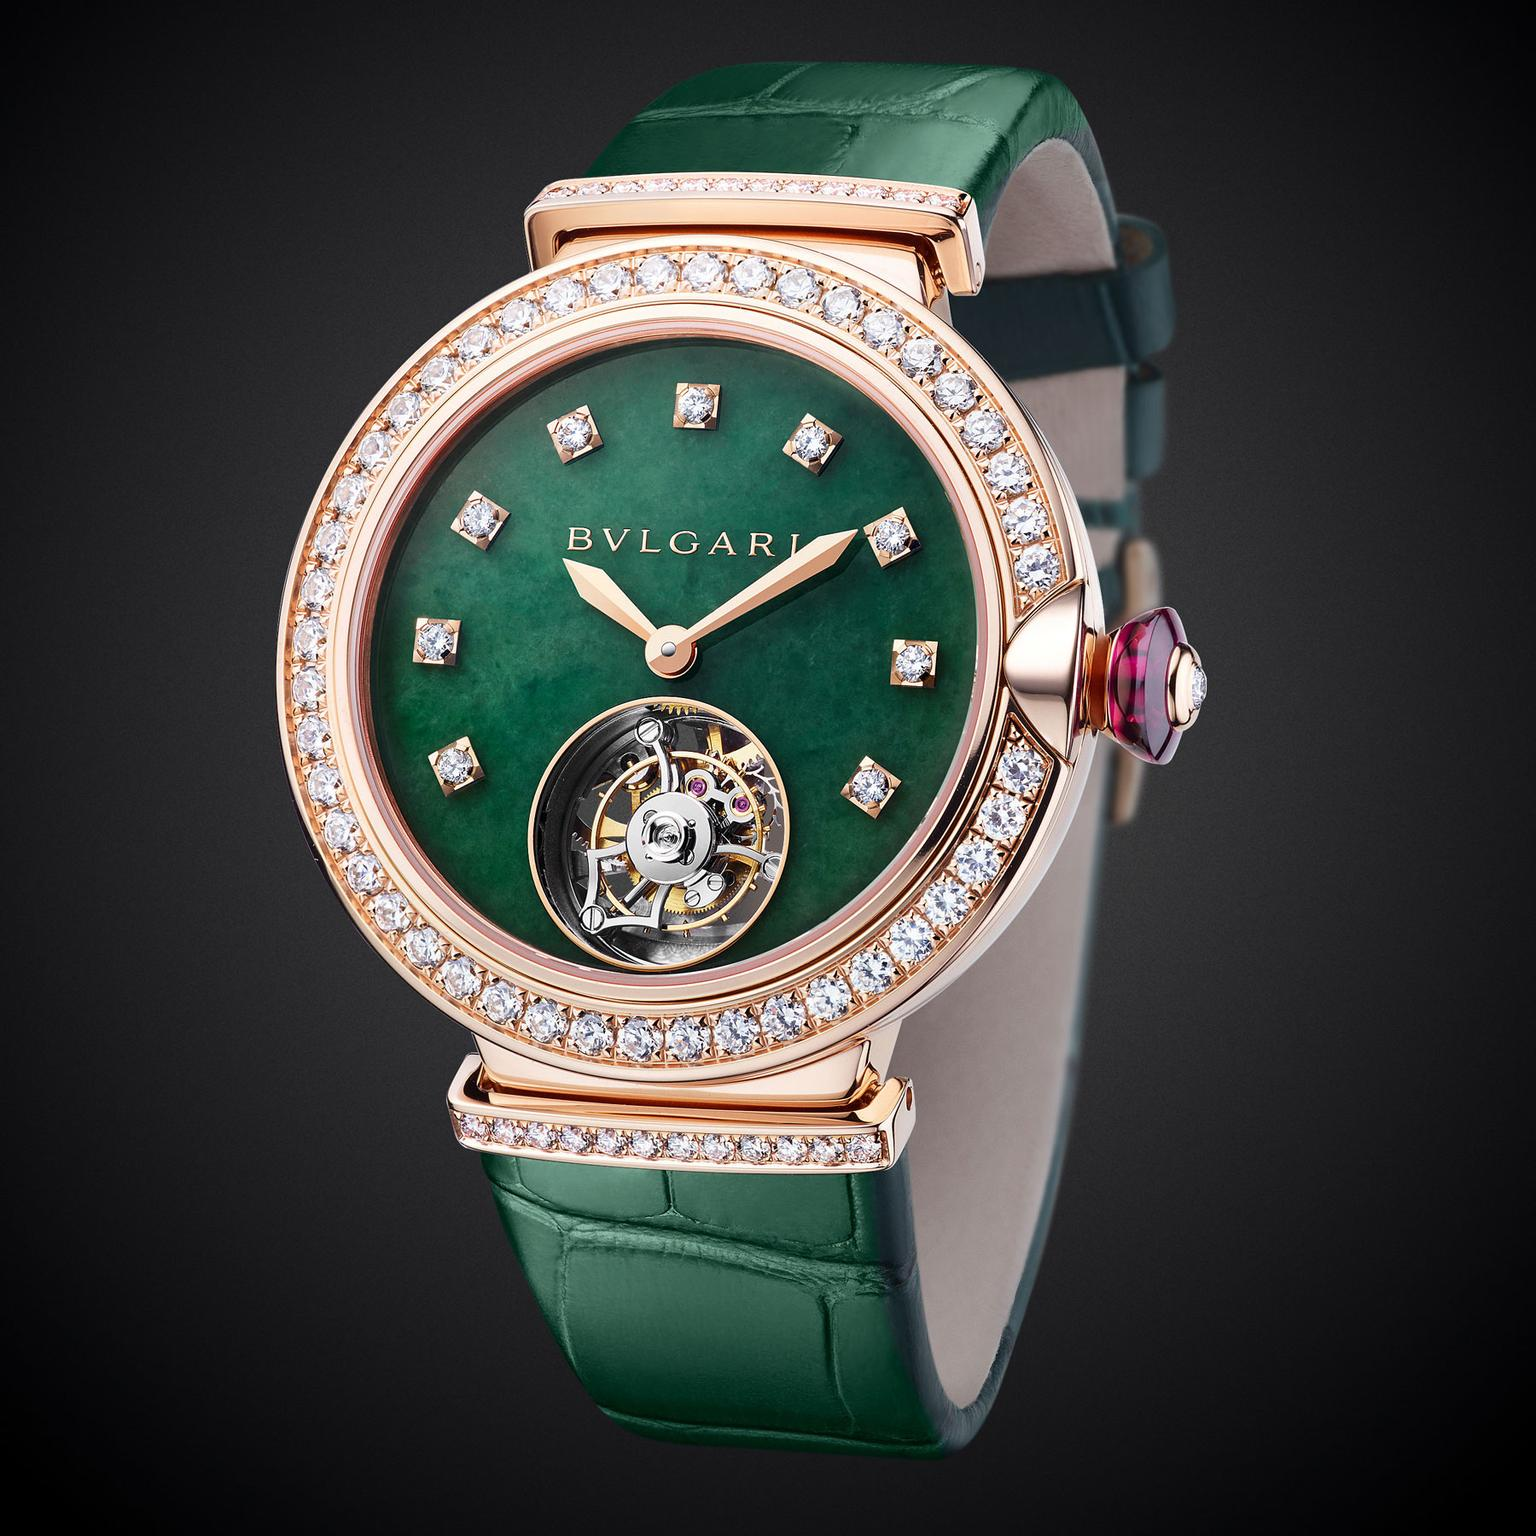 Bulgari LVCEA Tourbillon with jade dial